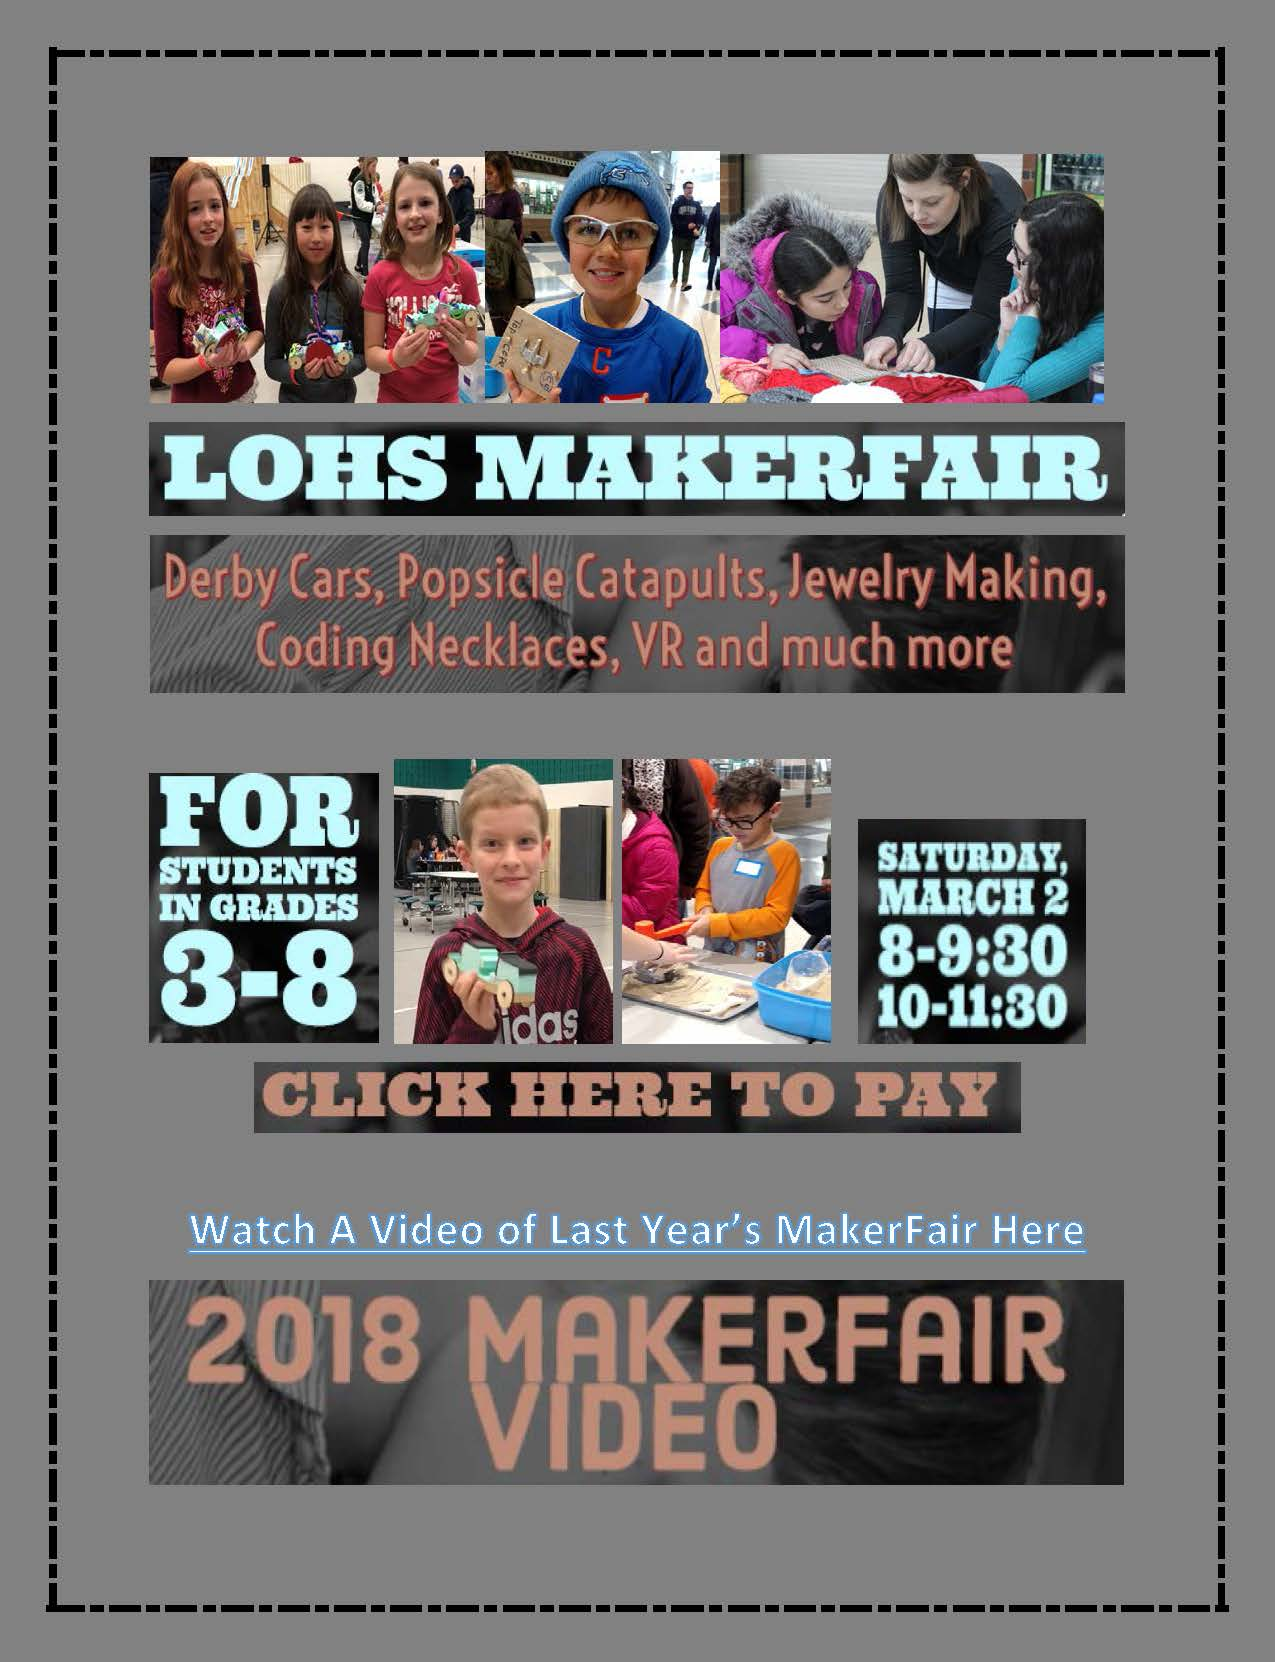 Makerfair March 2, 2019